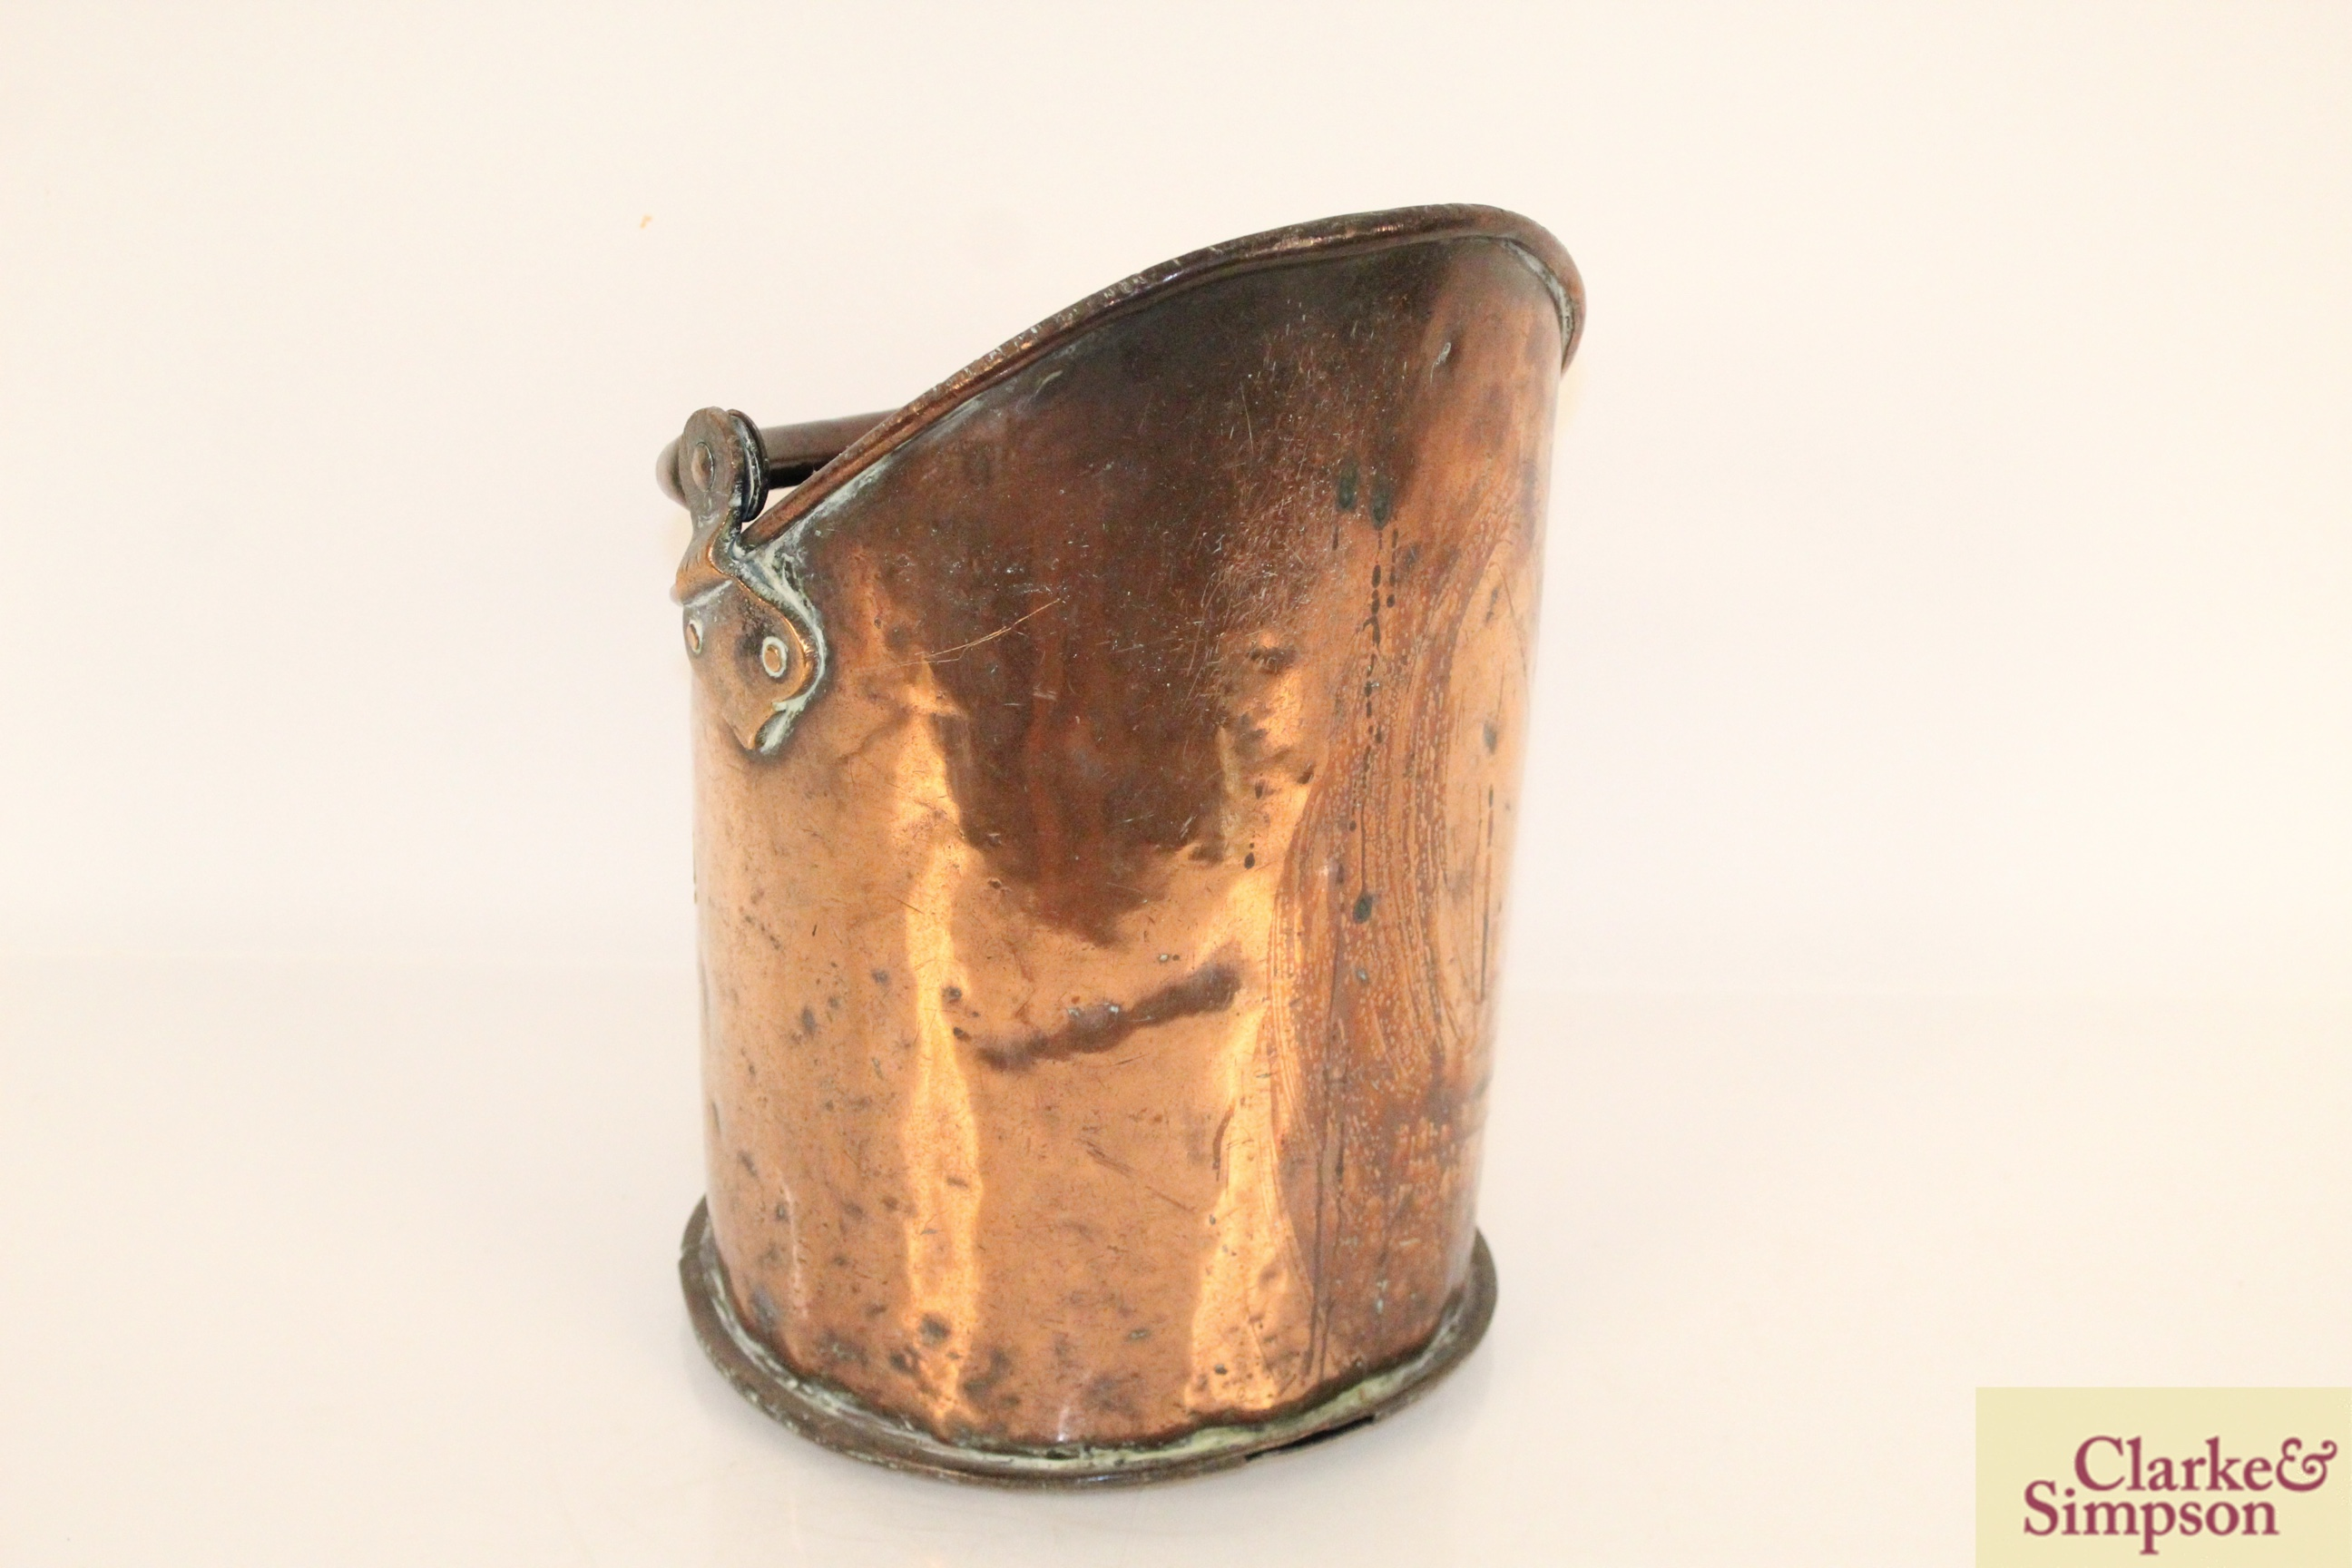 An antique copper coal hod with swing handle and - Image 3 of 6